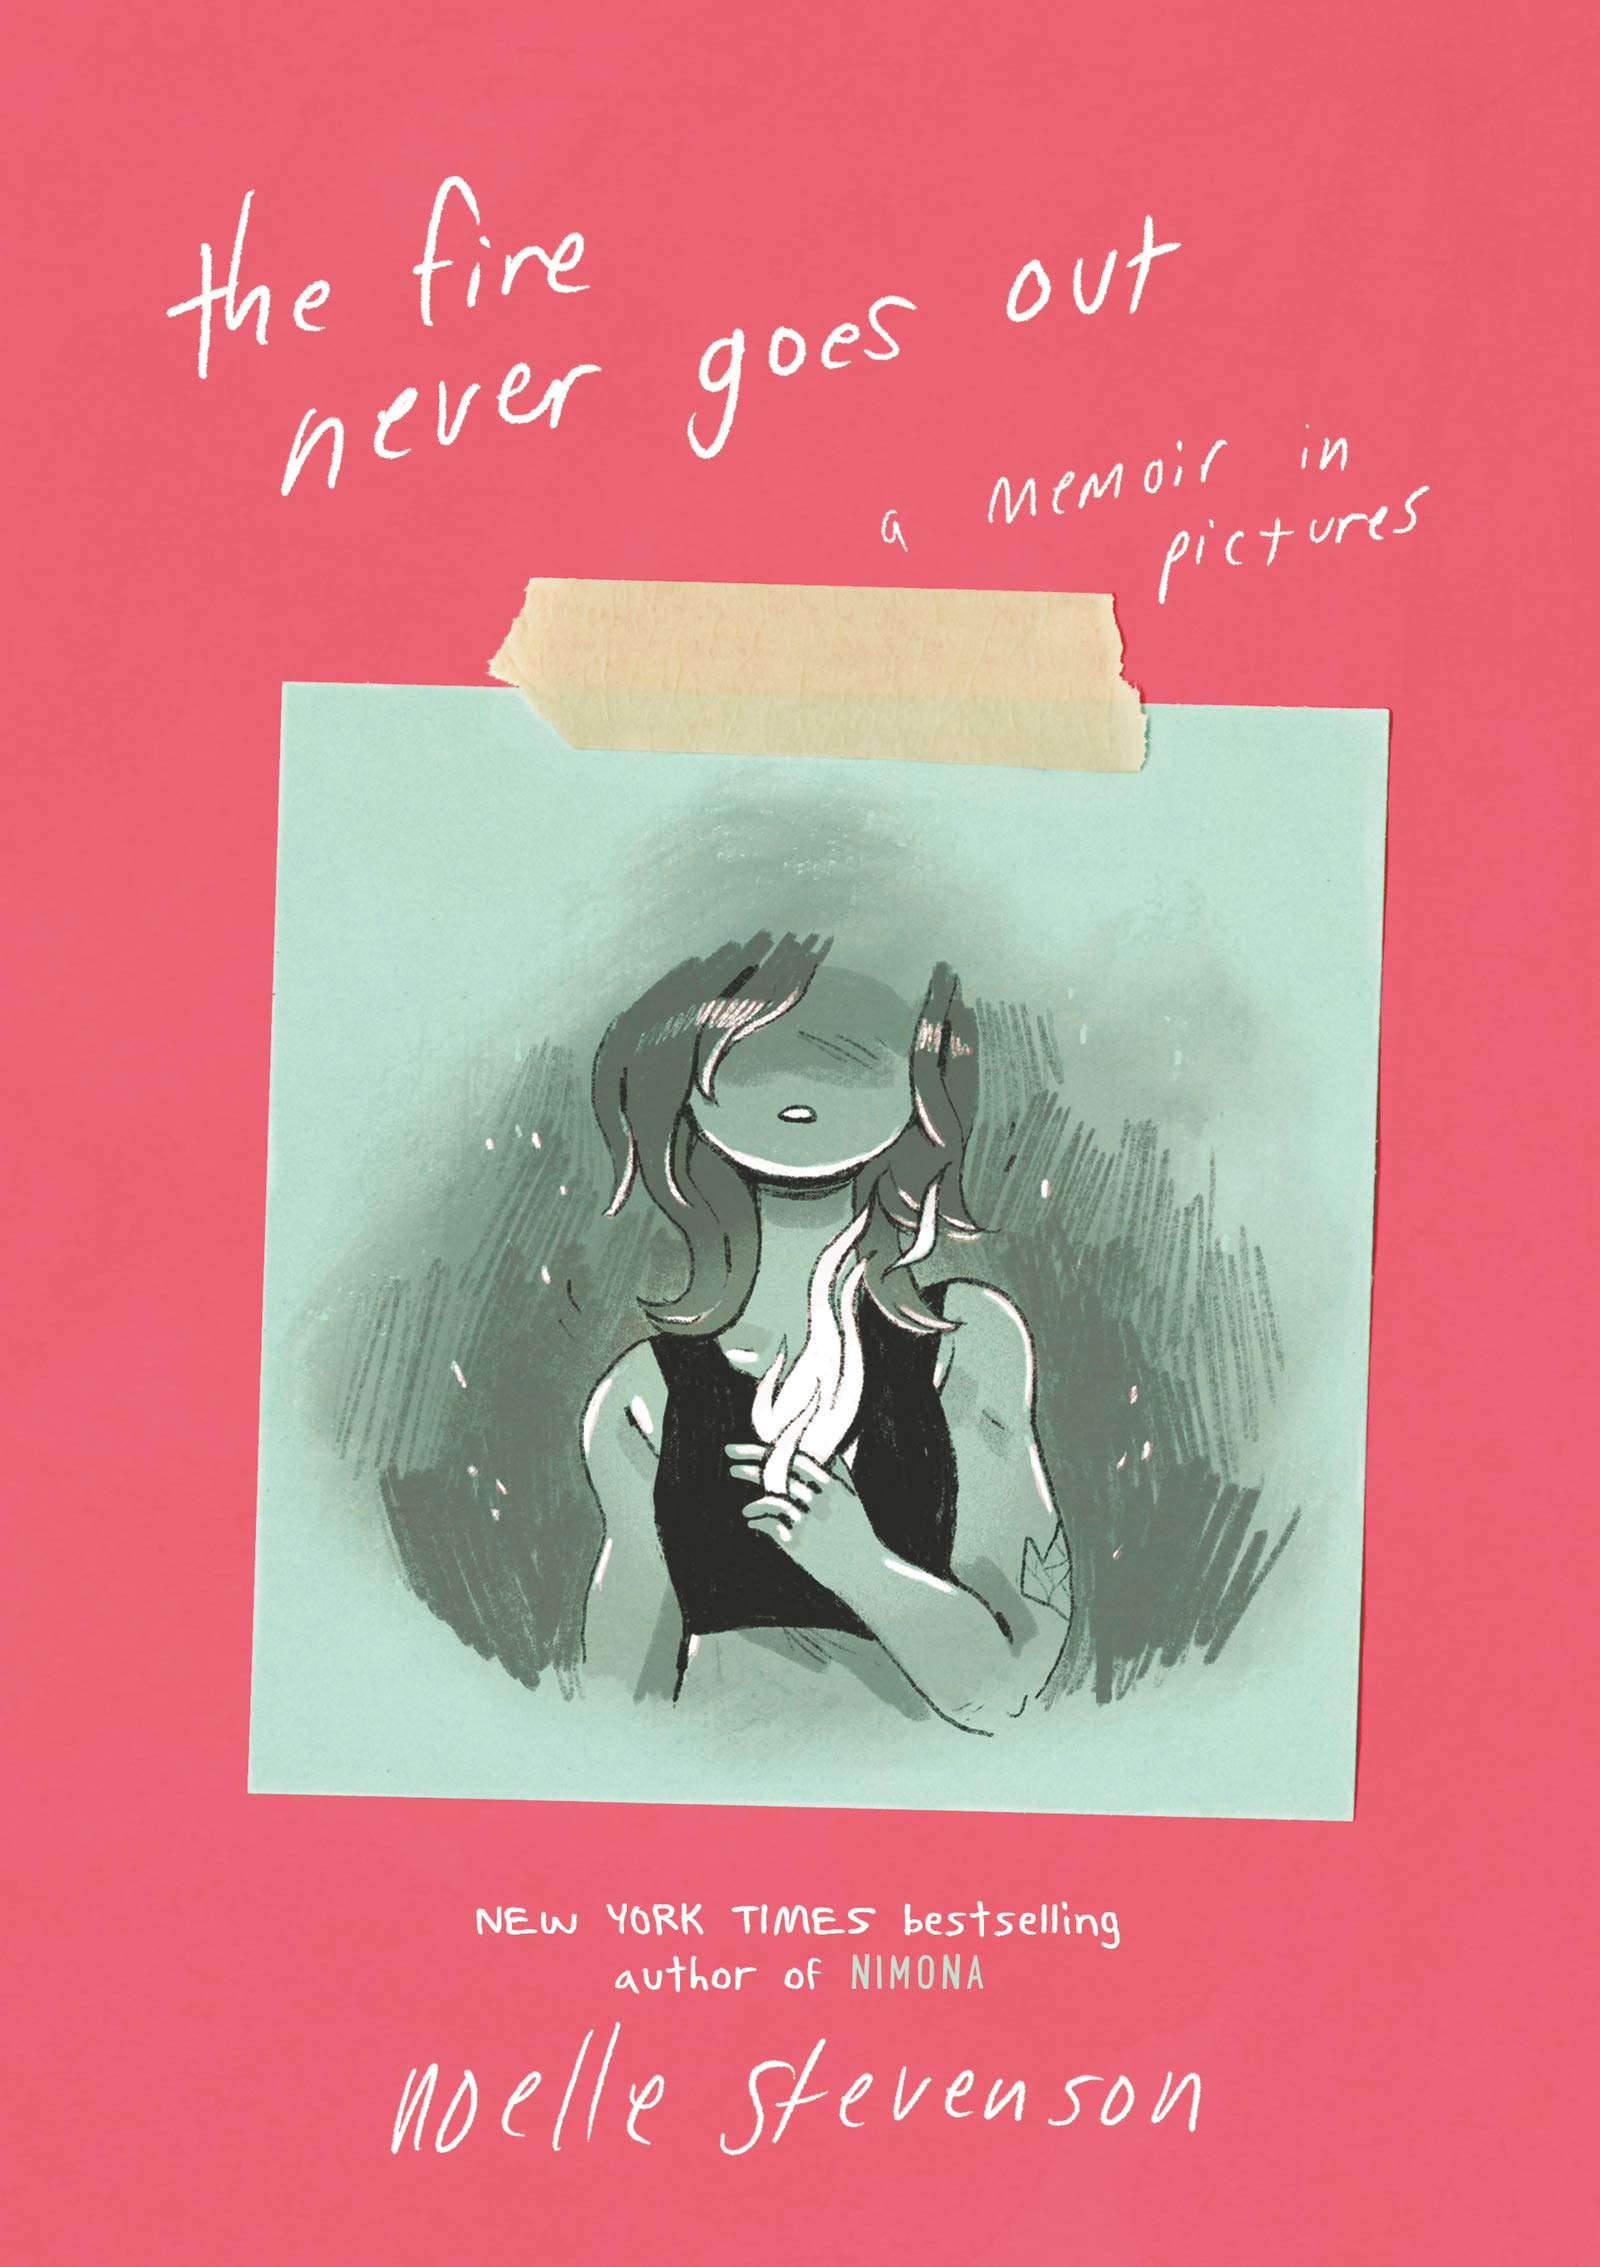 Graphic Novels for Winter 2020: The Fire Never Goes Out